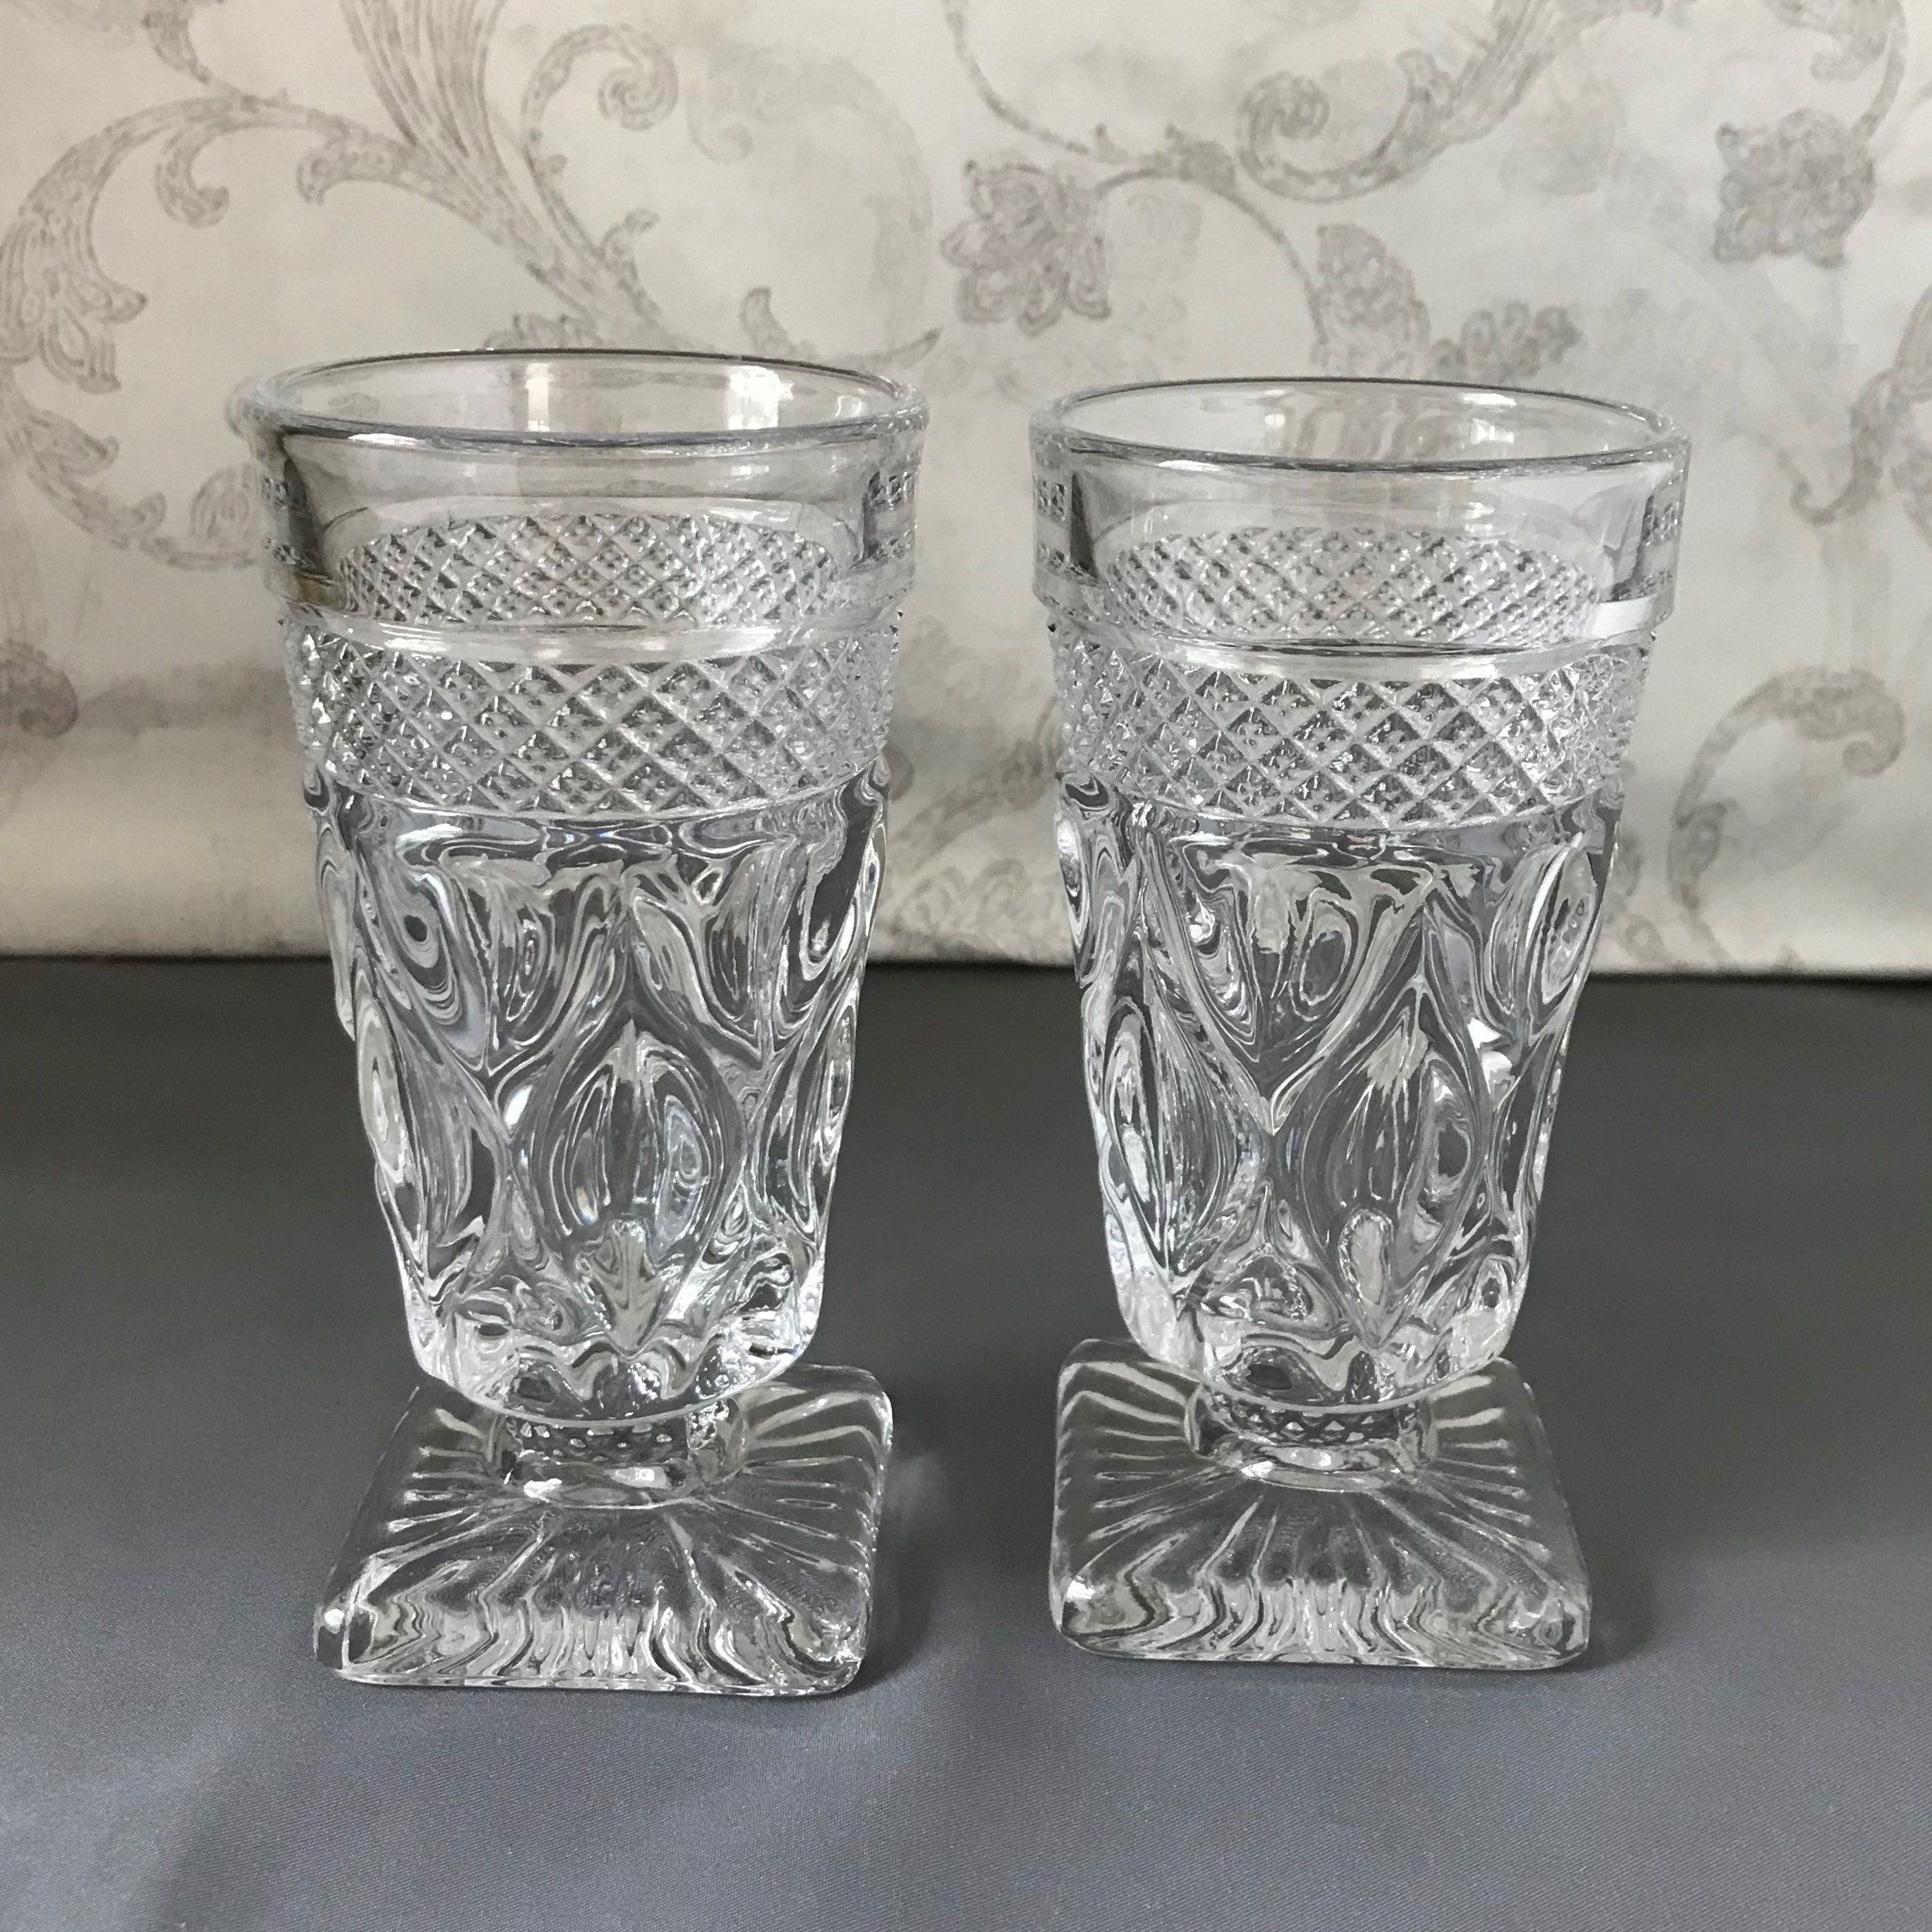 Set Of 2 Juice Glasses Cape Cod Clear Footed Tumbler Faceted Stem Imperial Glass Ohio Vintage Drink Imperial Glass Vintage Drinking Glasses Juice Glasses